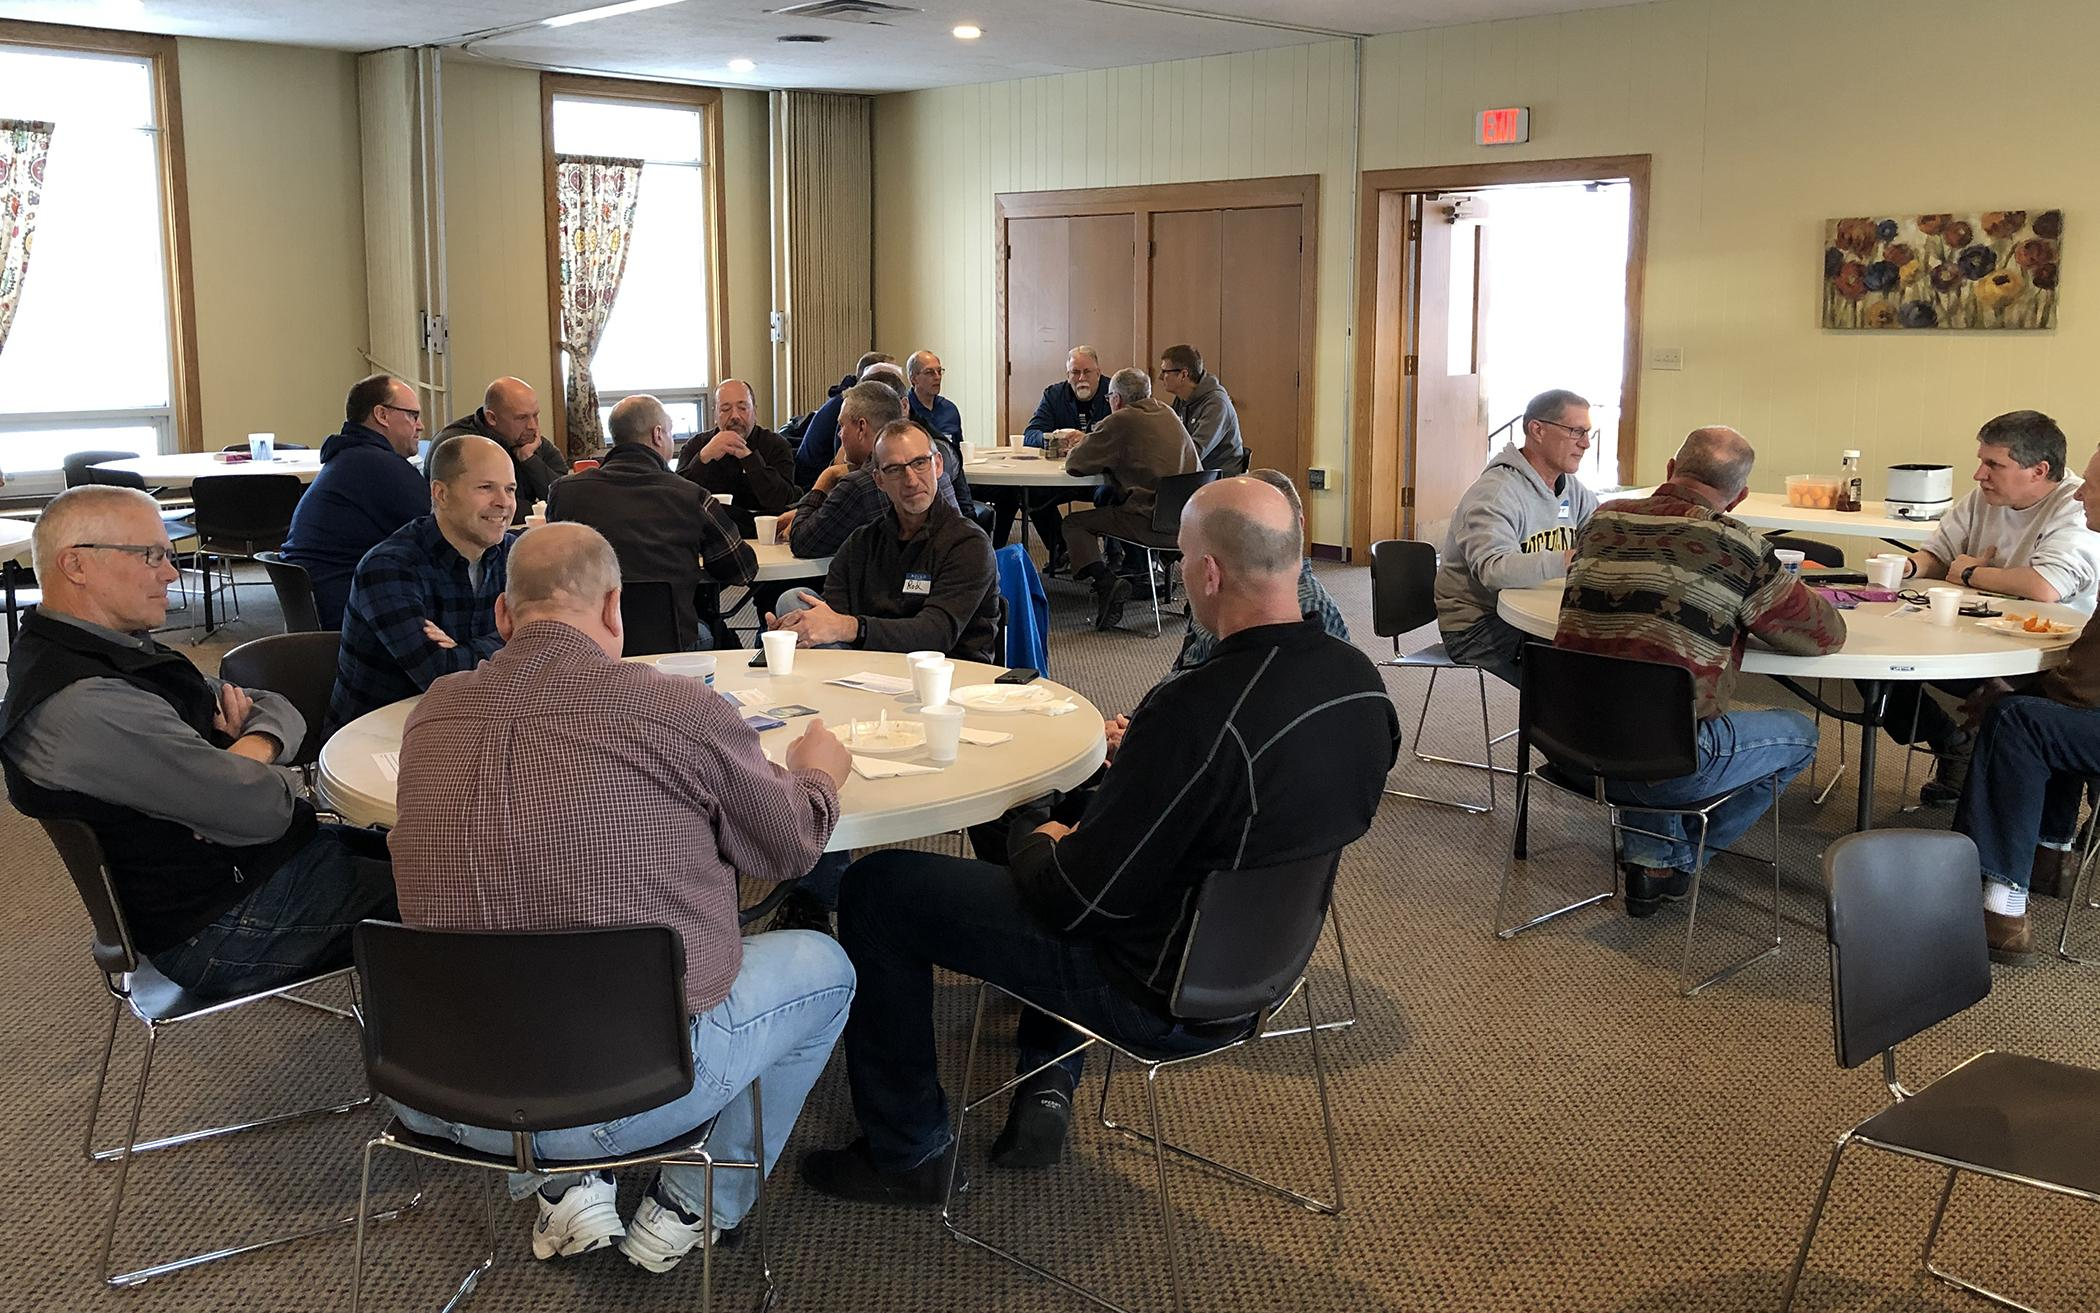 Focus on Scripture, Discipleship Builds Leaders in Hudsonville, Mich.